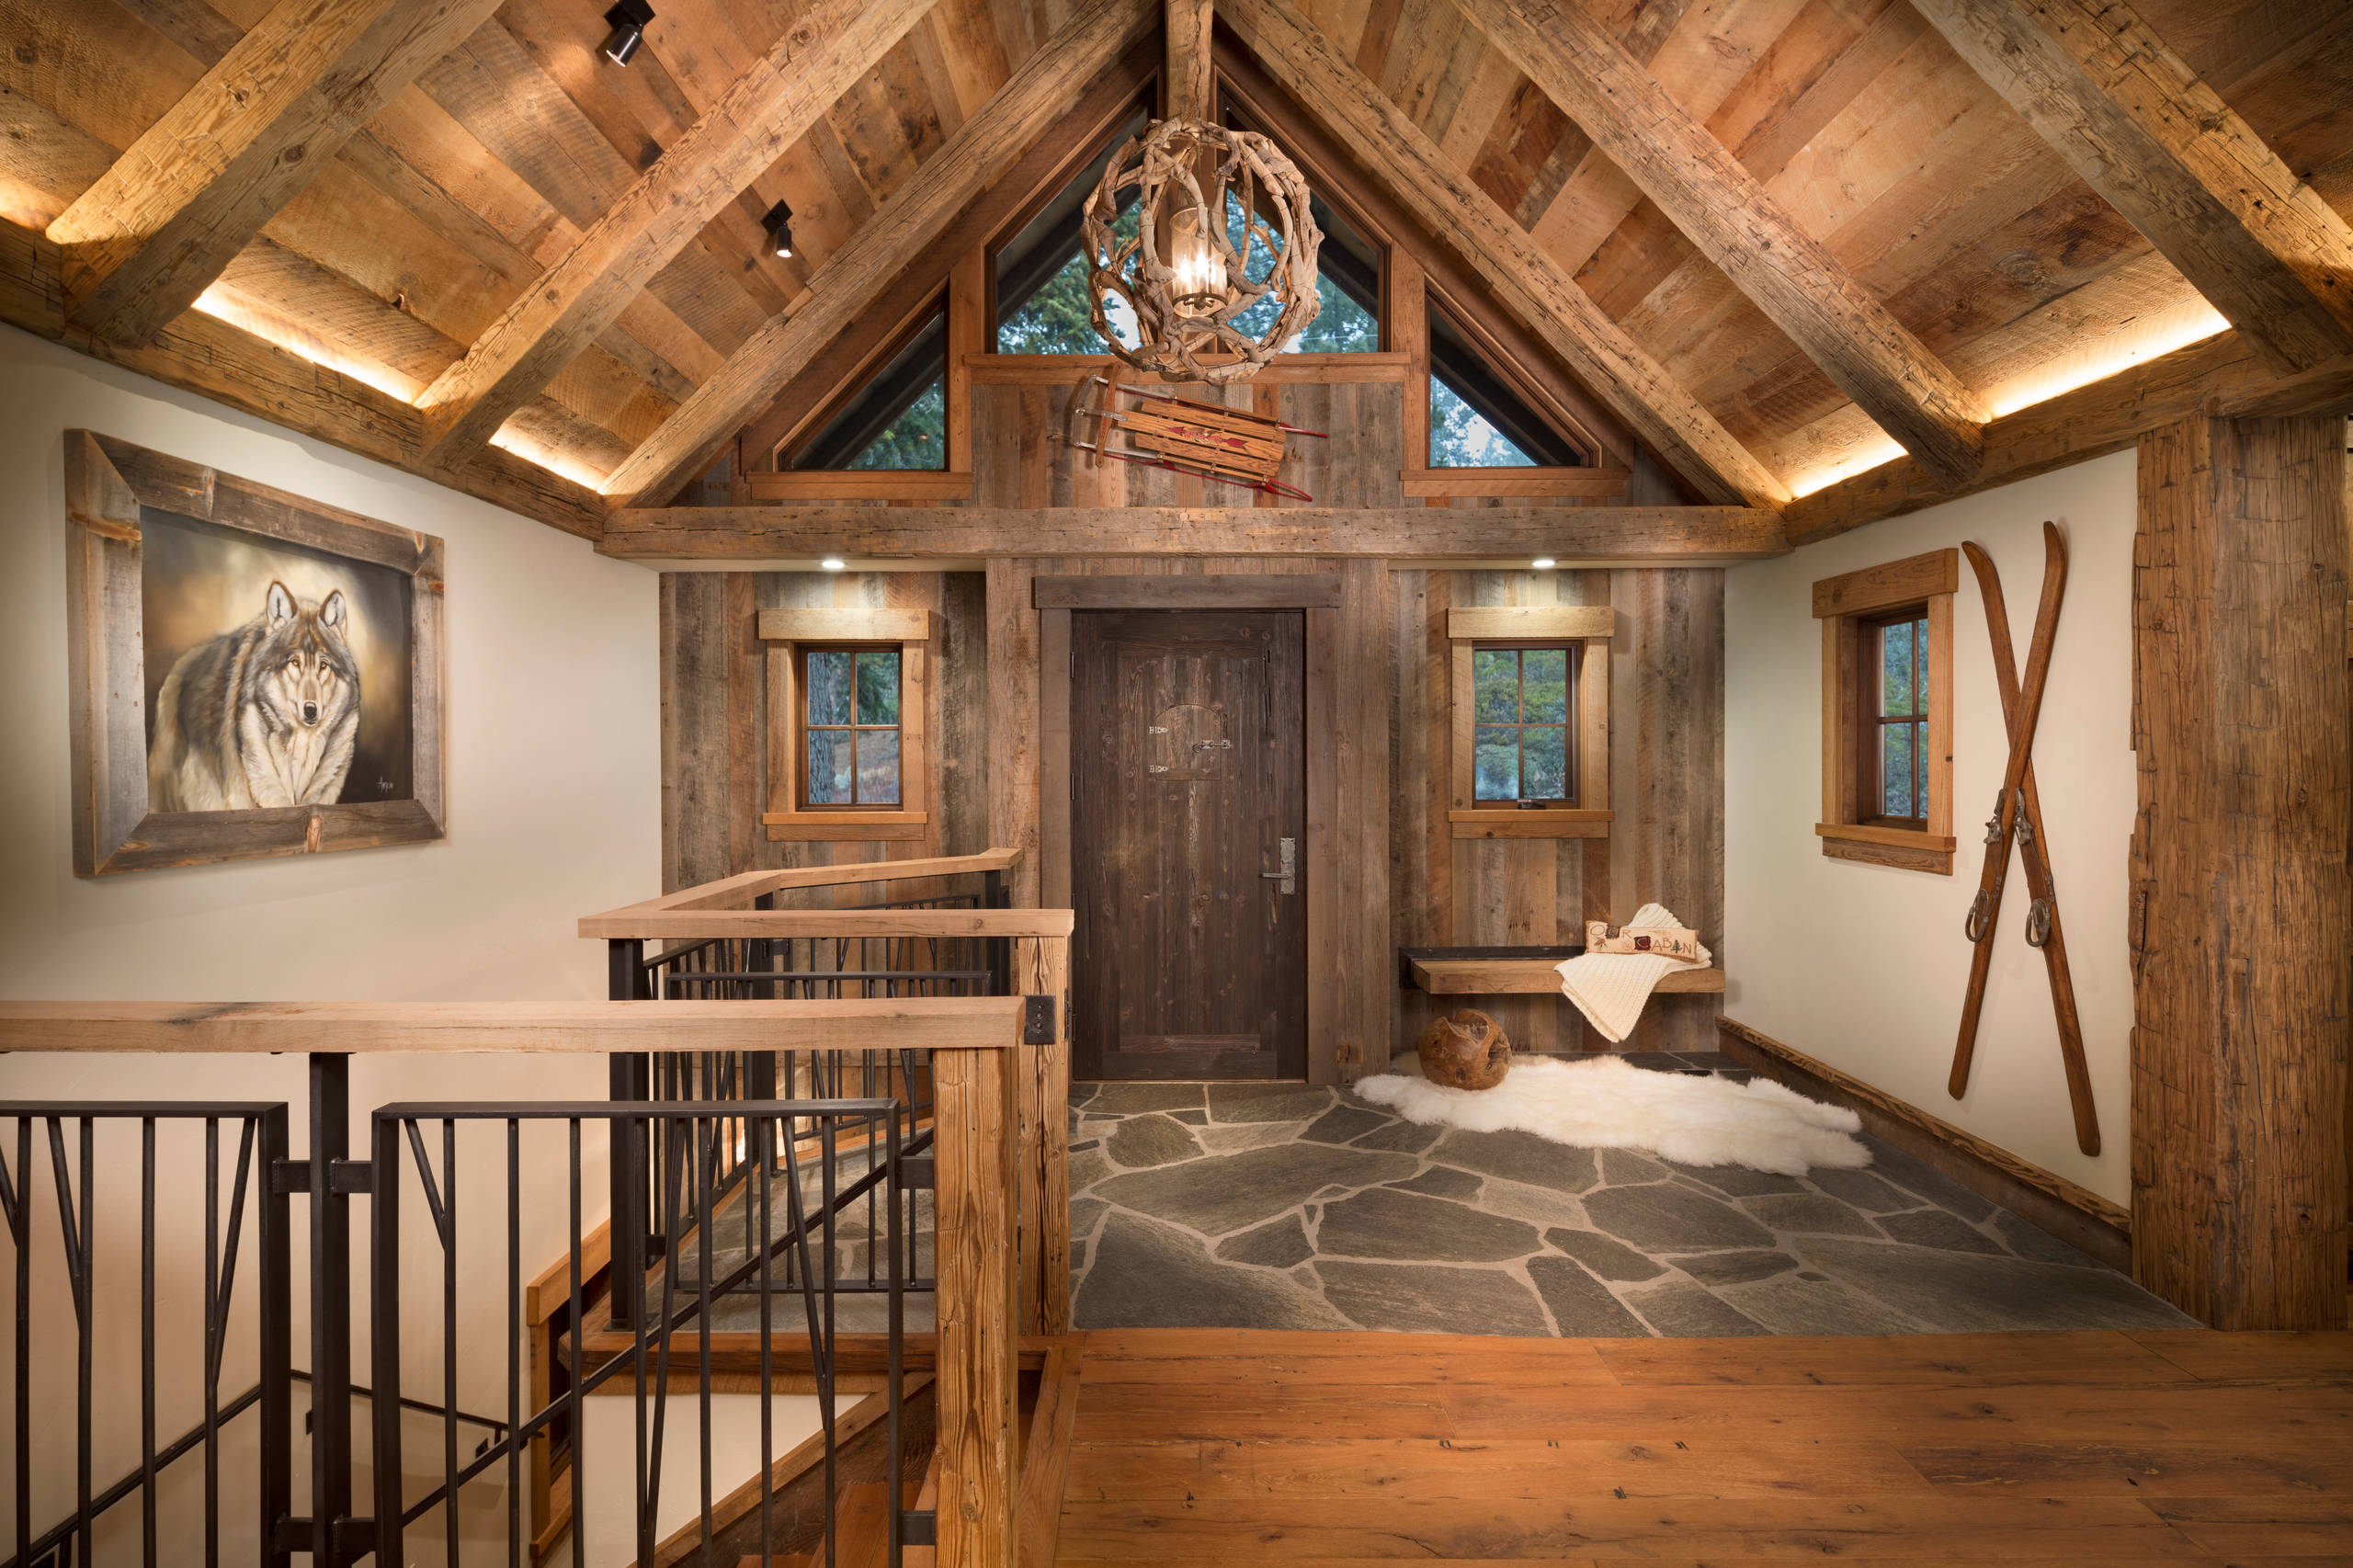 15 Welcoming Rustic Entry Hall Designs Youre Going To Adore